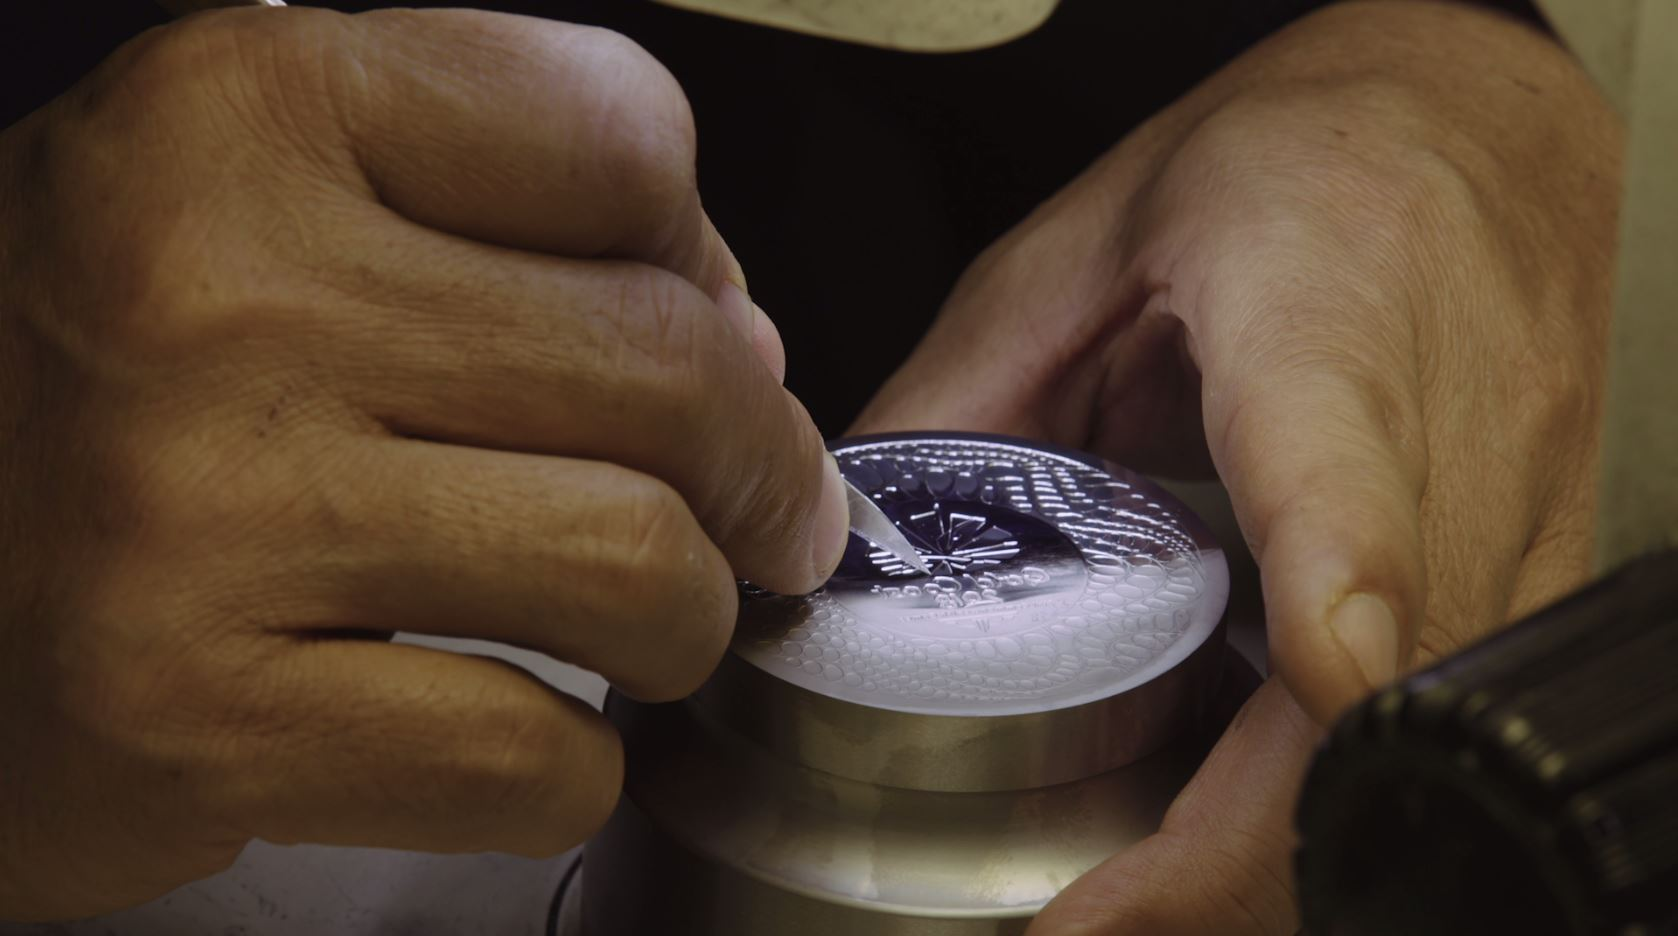 Polishing the die upclose